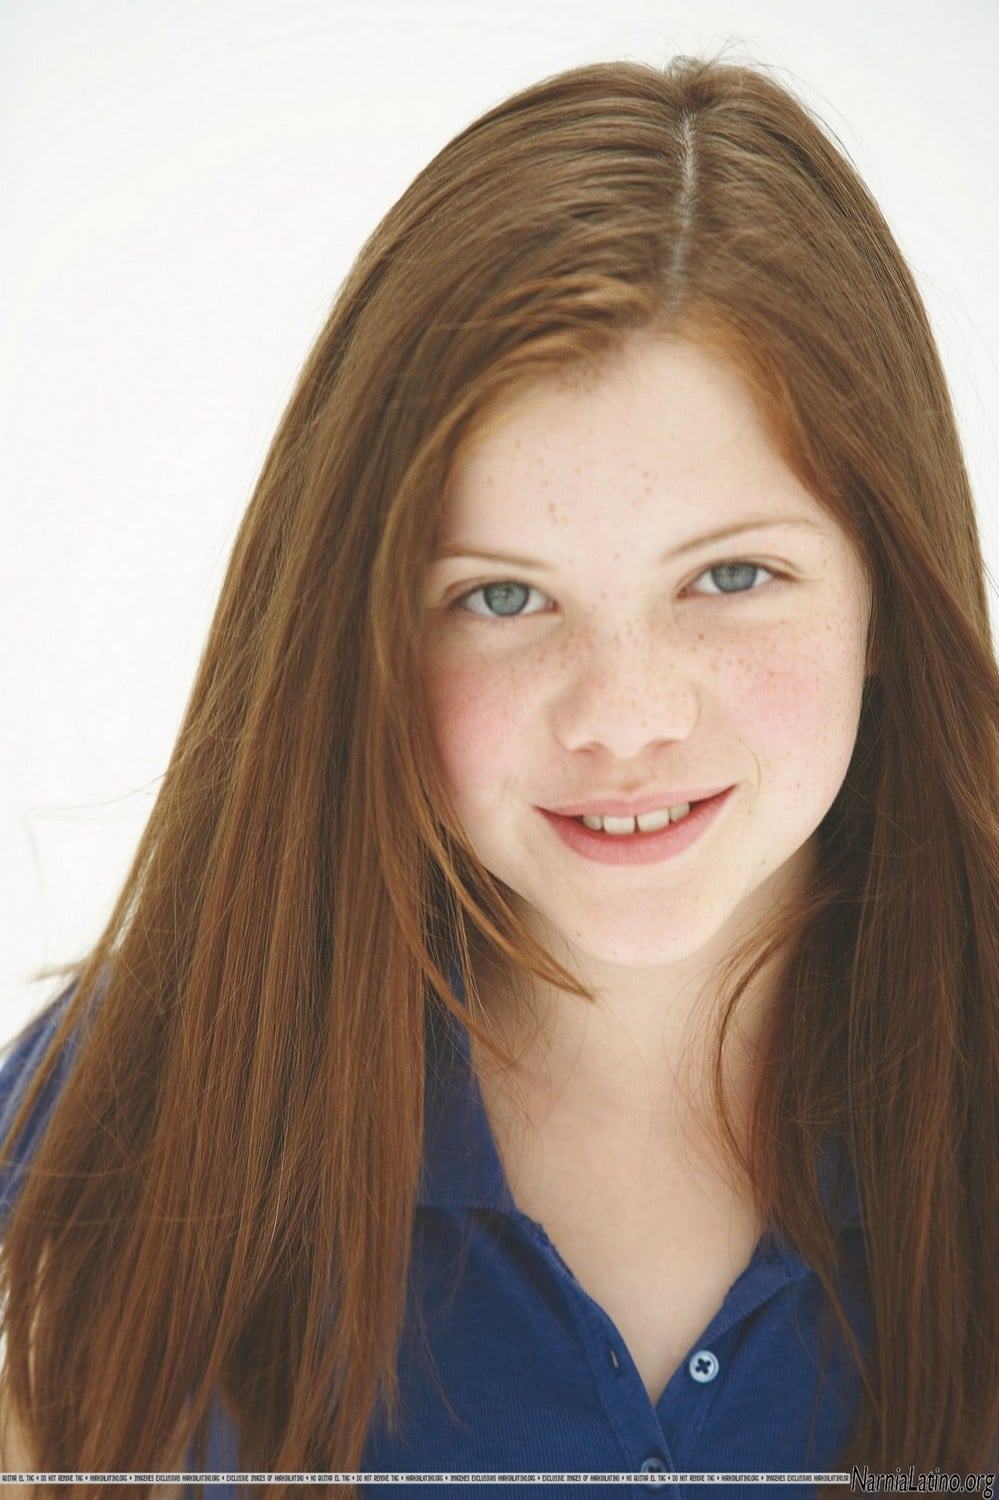 Picture of georgie henley for Georgia fotos